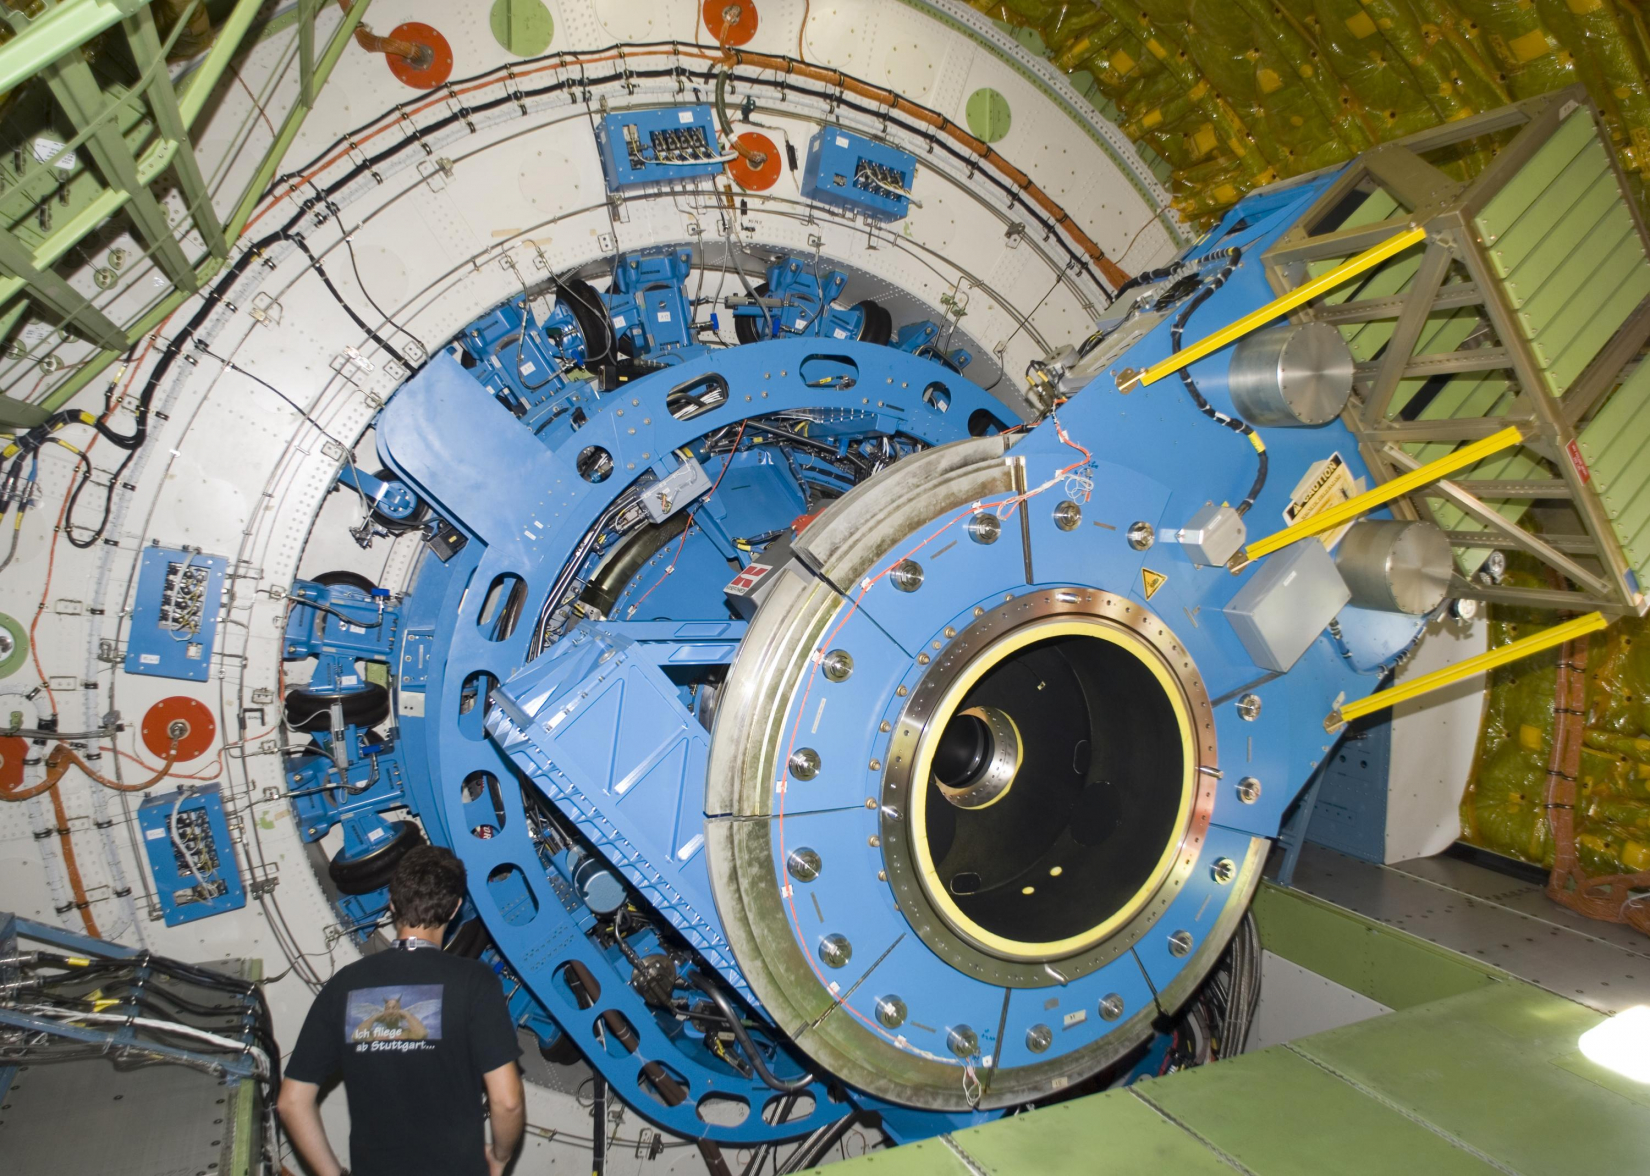 SOFIA telescope without instrument installed